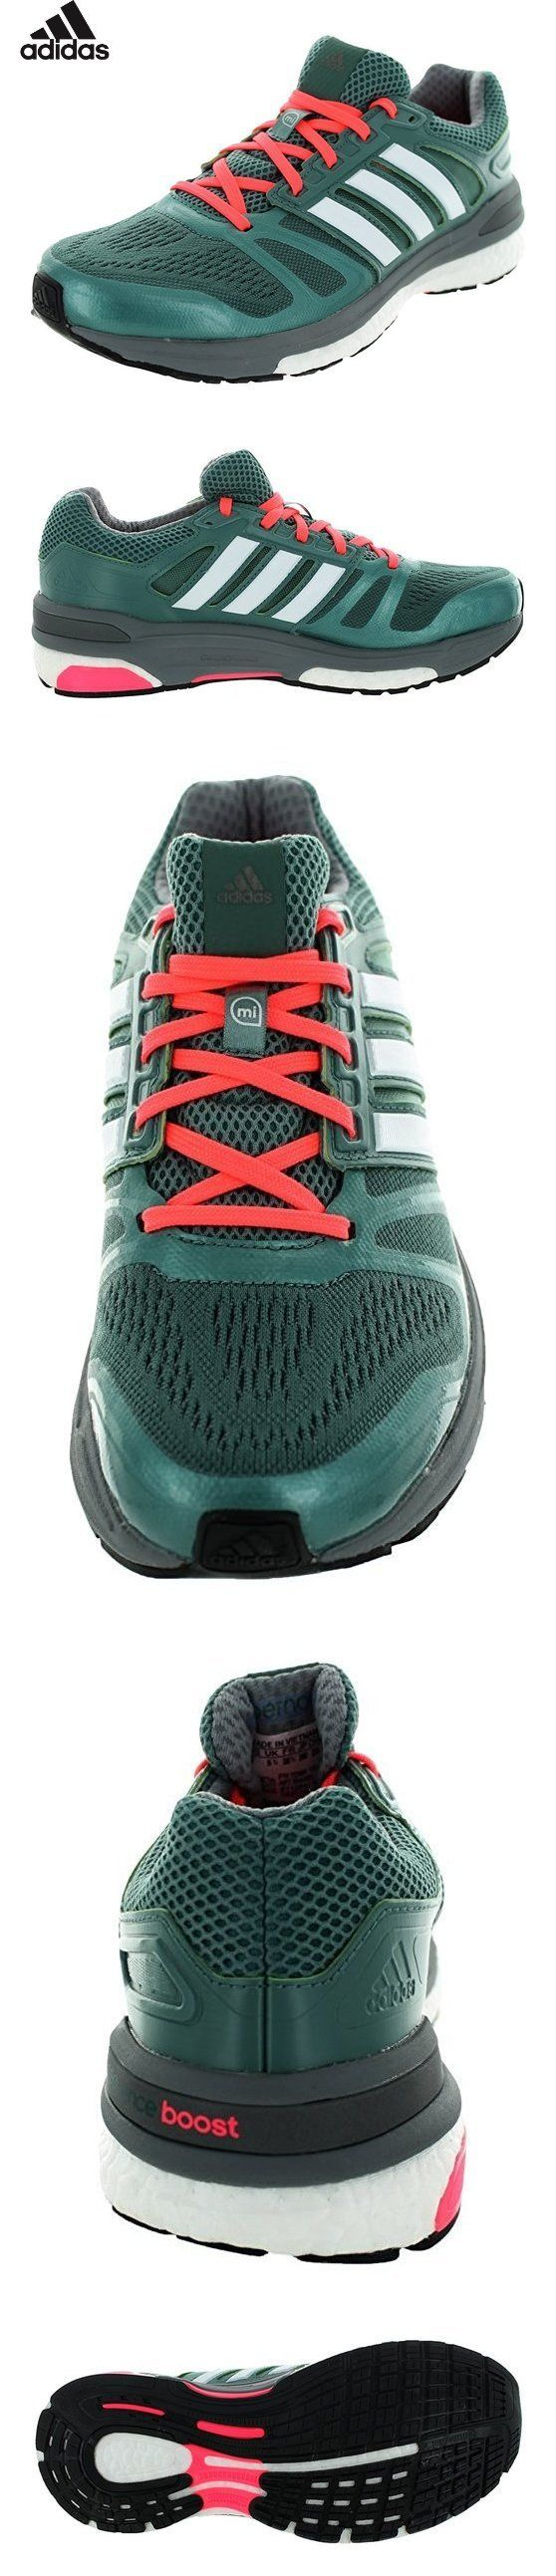 Adidas Supernova Sequence 7 Women's Running Shoes SS15 Womens Green